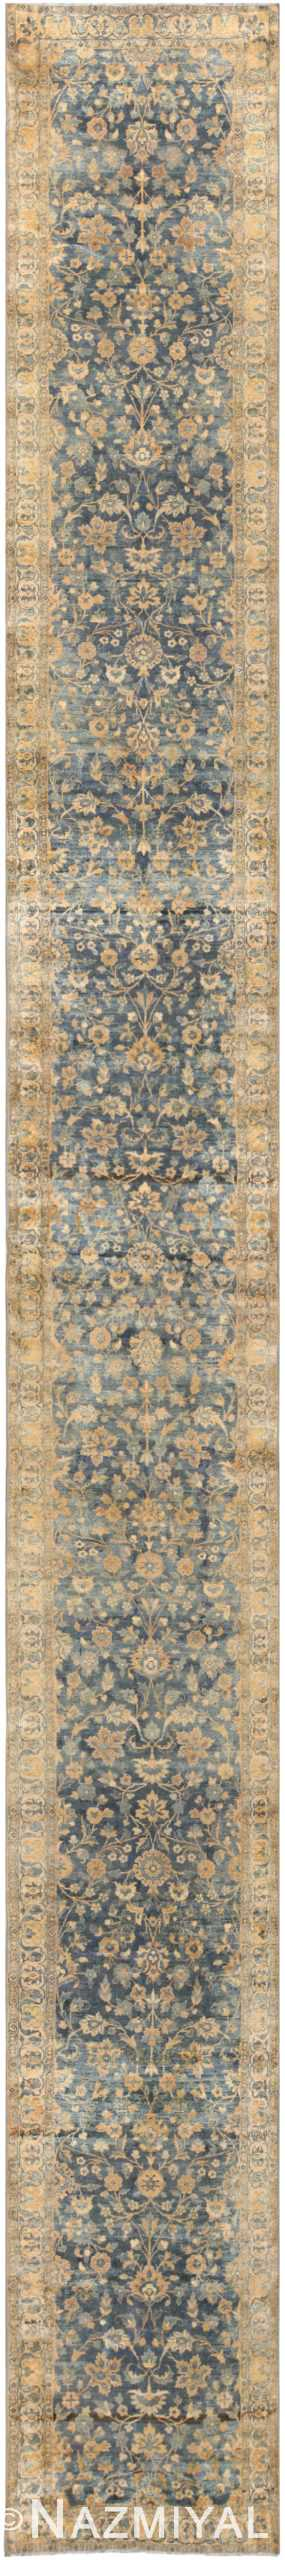 Antique Persian Kerman Runner 48267 Nazmiyal